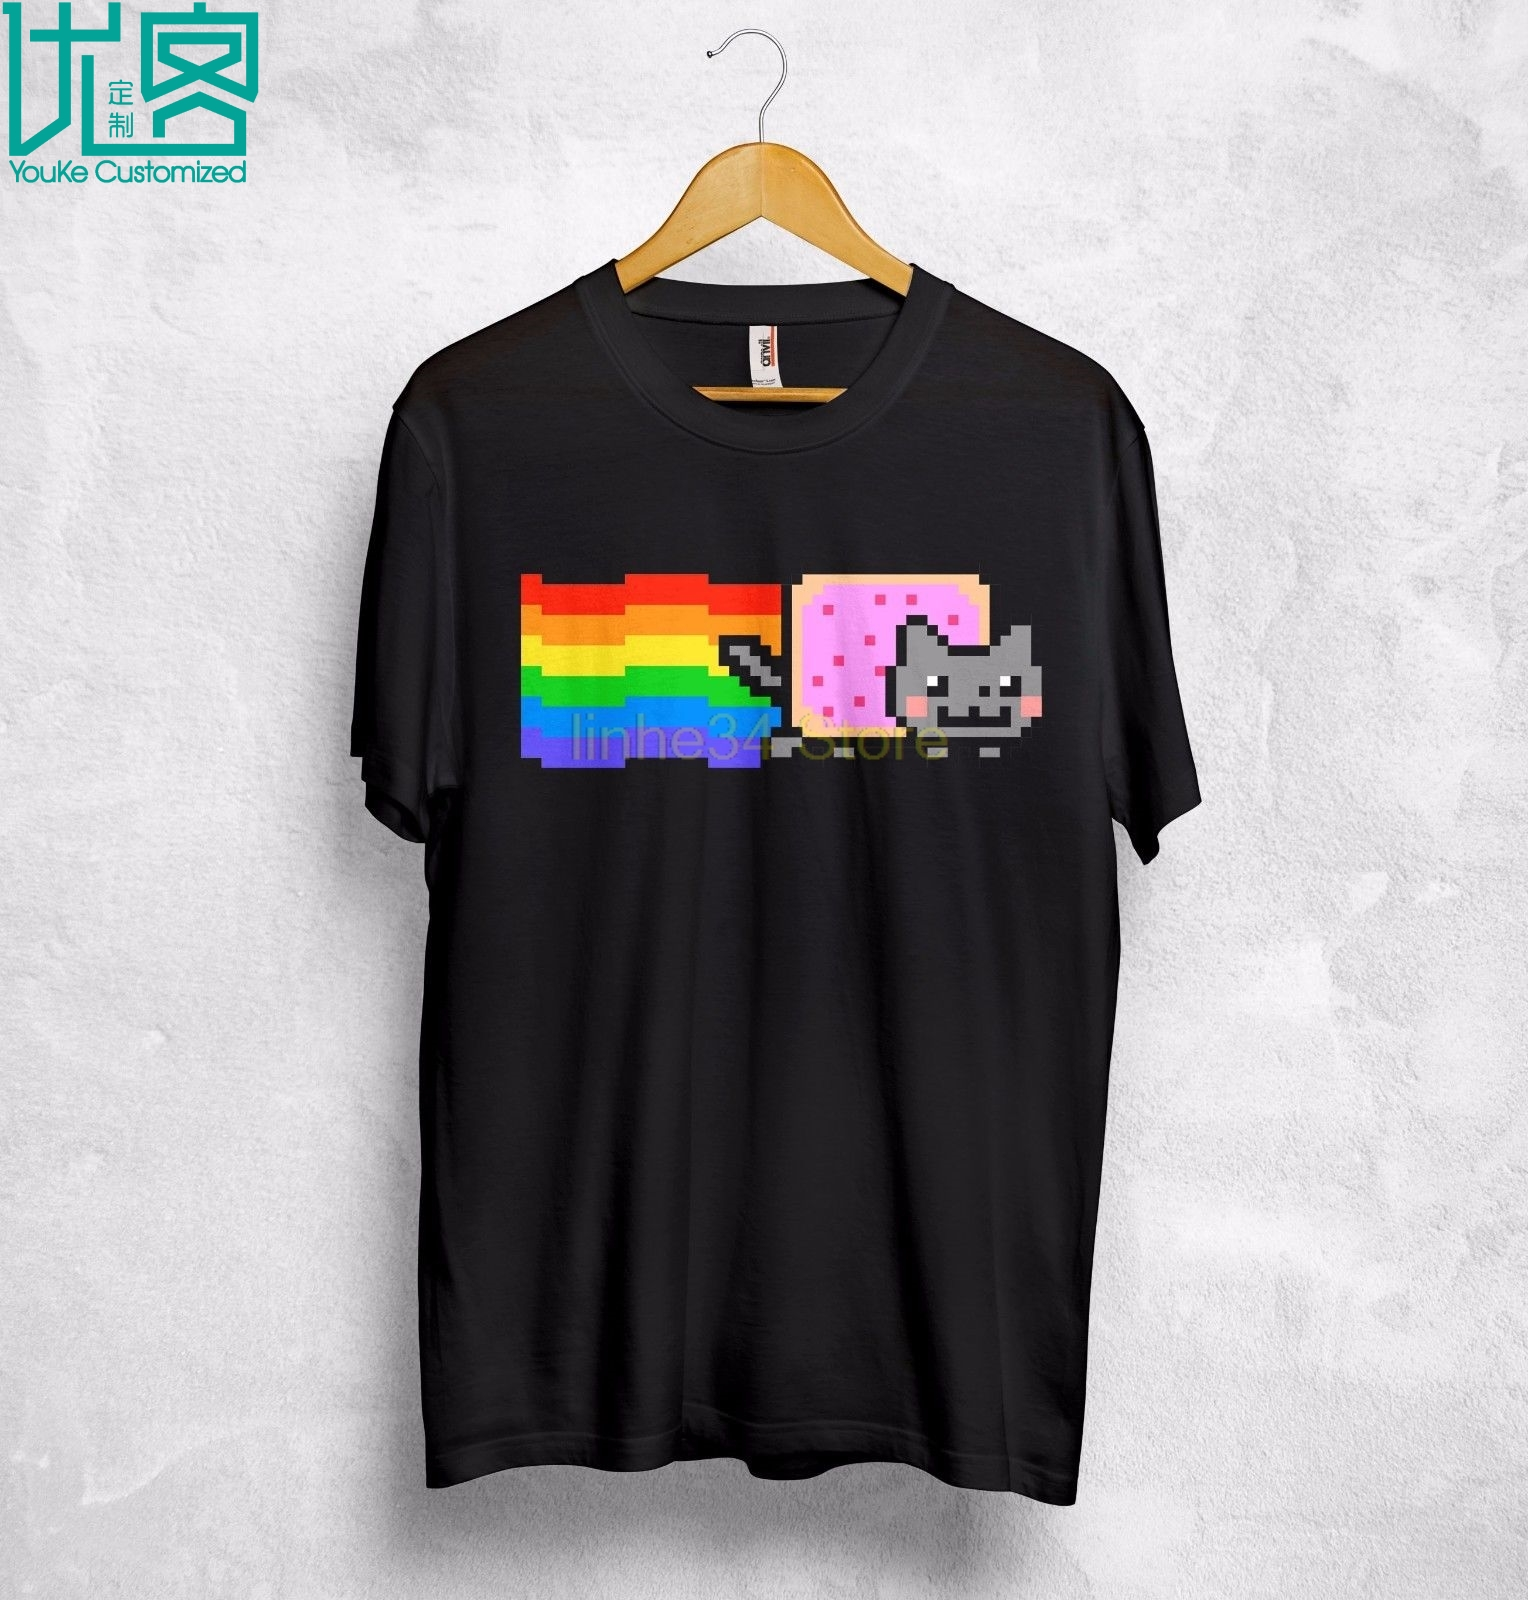 Nyan KittenT Shirt Top YouTube Funny Gift Internet Meme Japanese Pop Song T Shirt Style Fashion Men T-Shirts Top Tee image